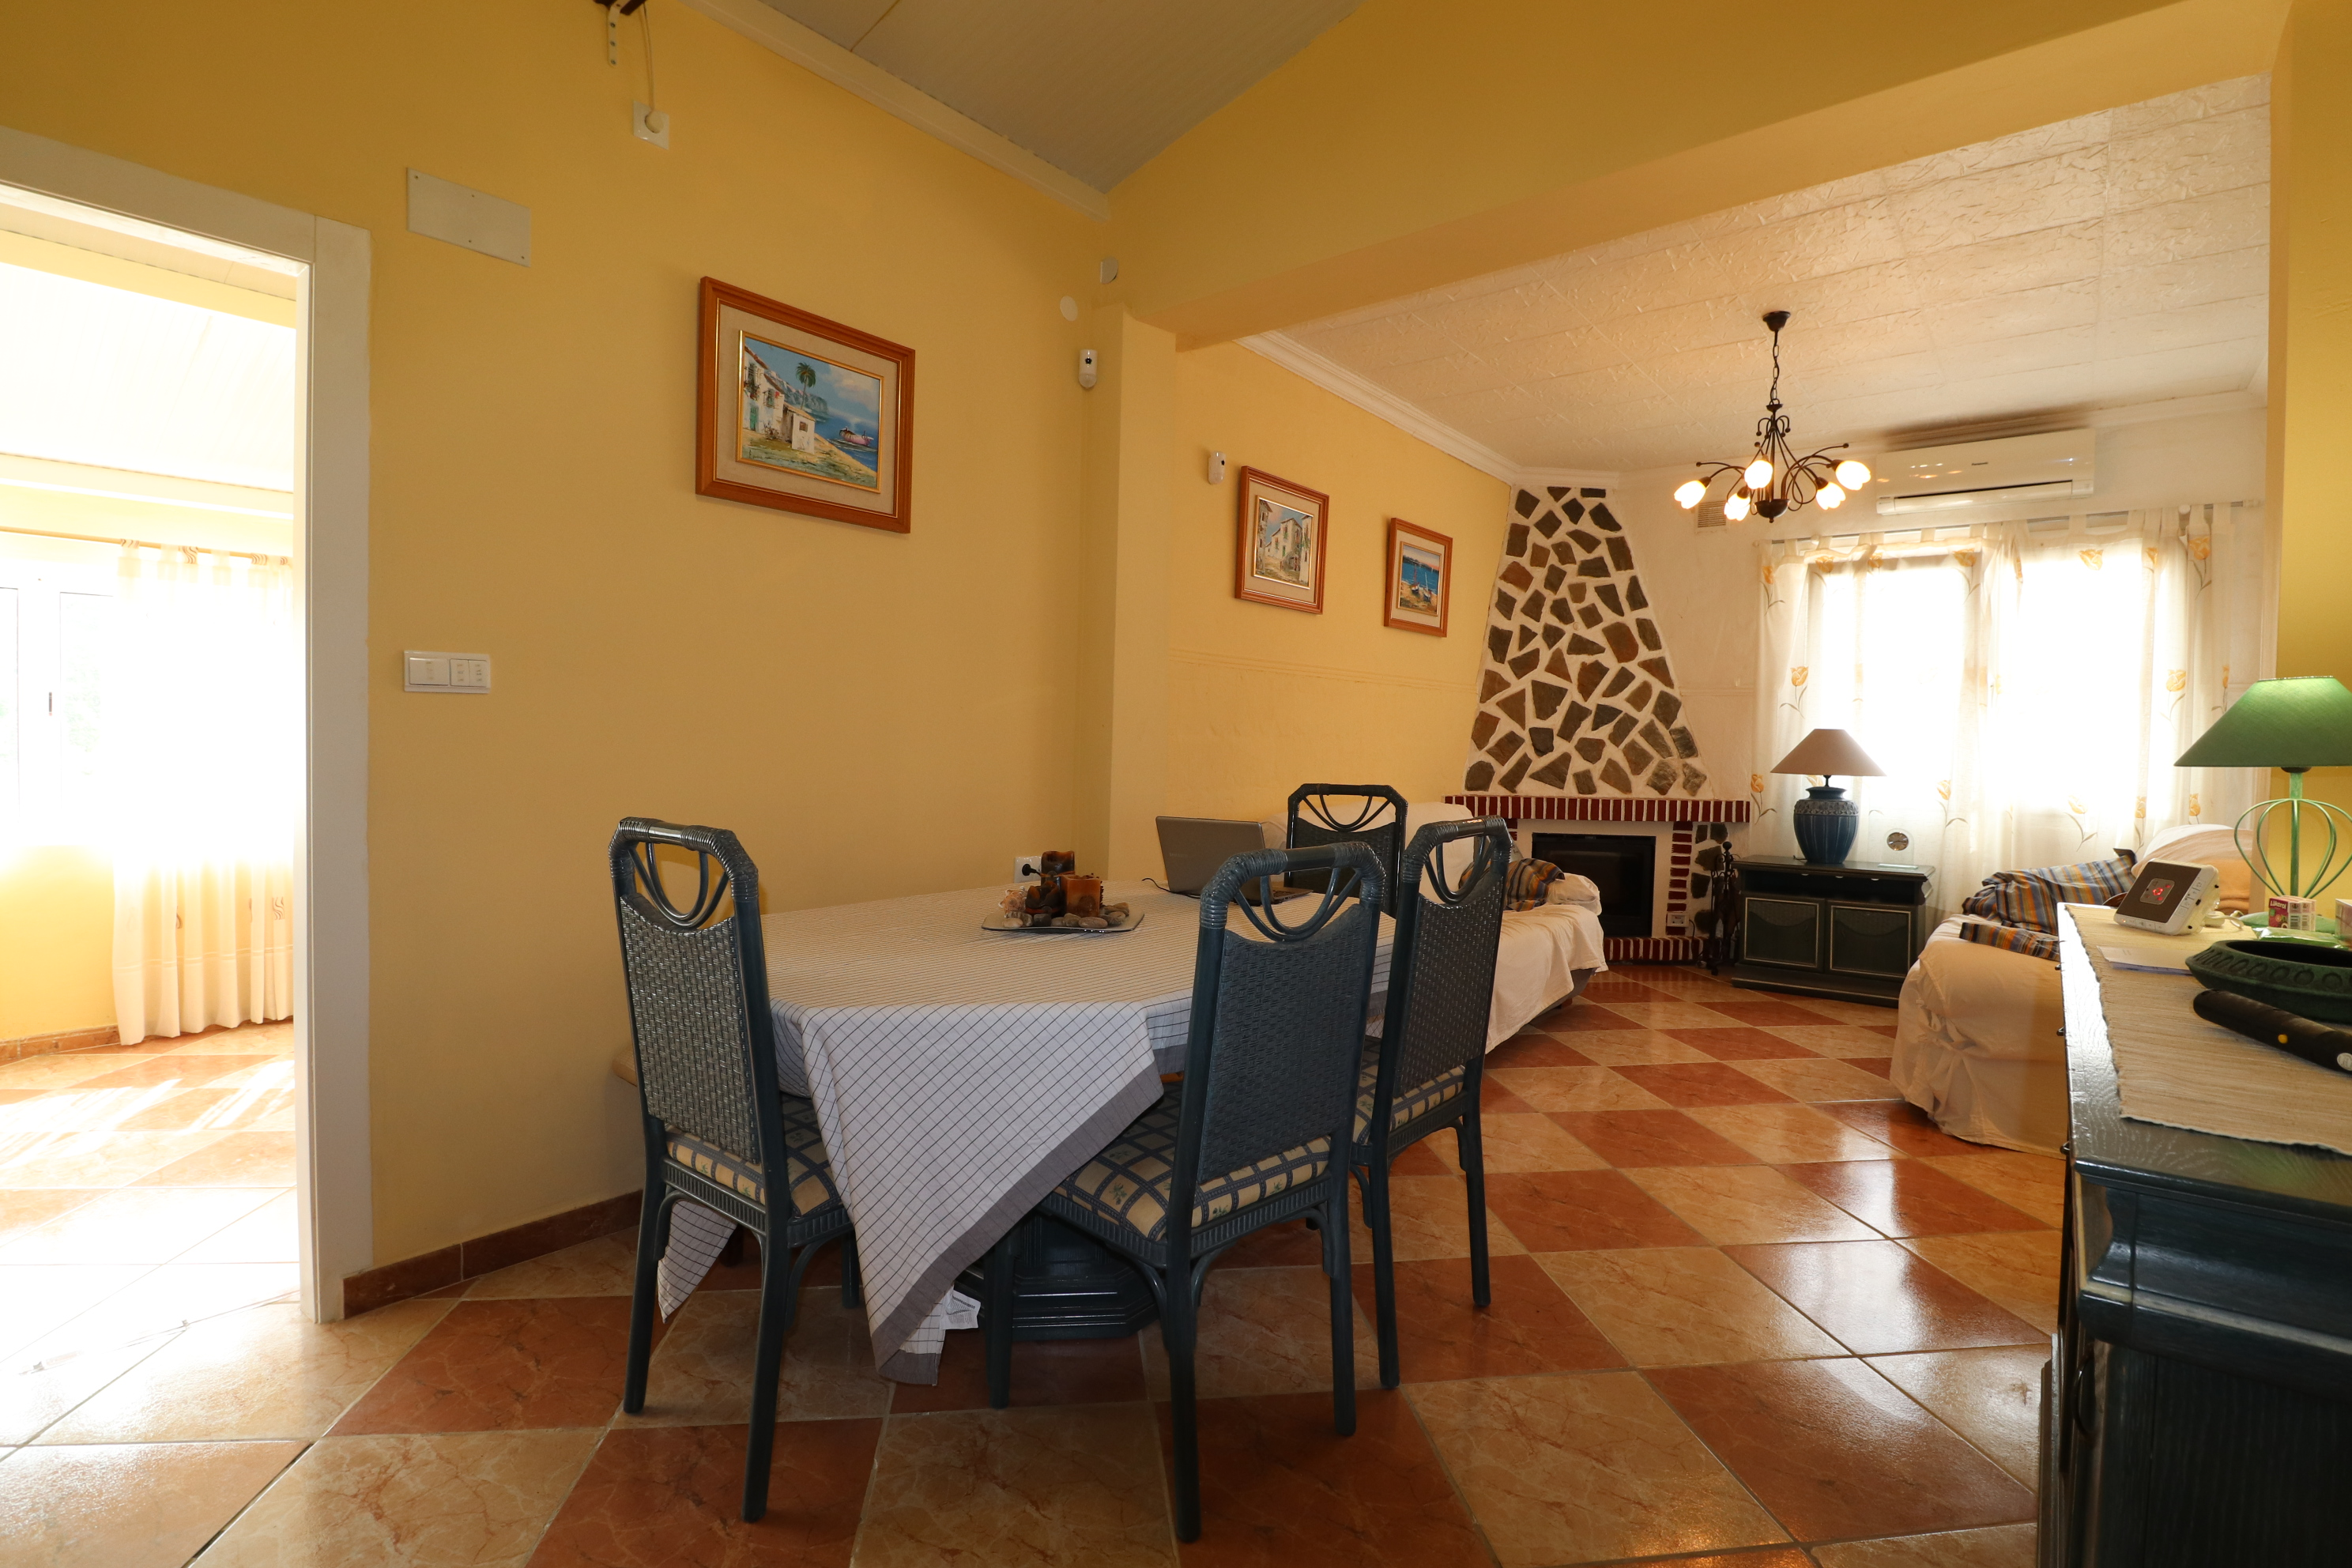 4 bed Country Property in Heredades - Country image 6